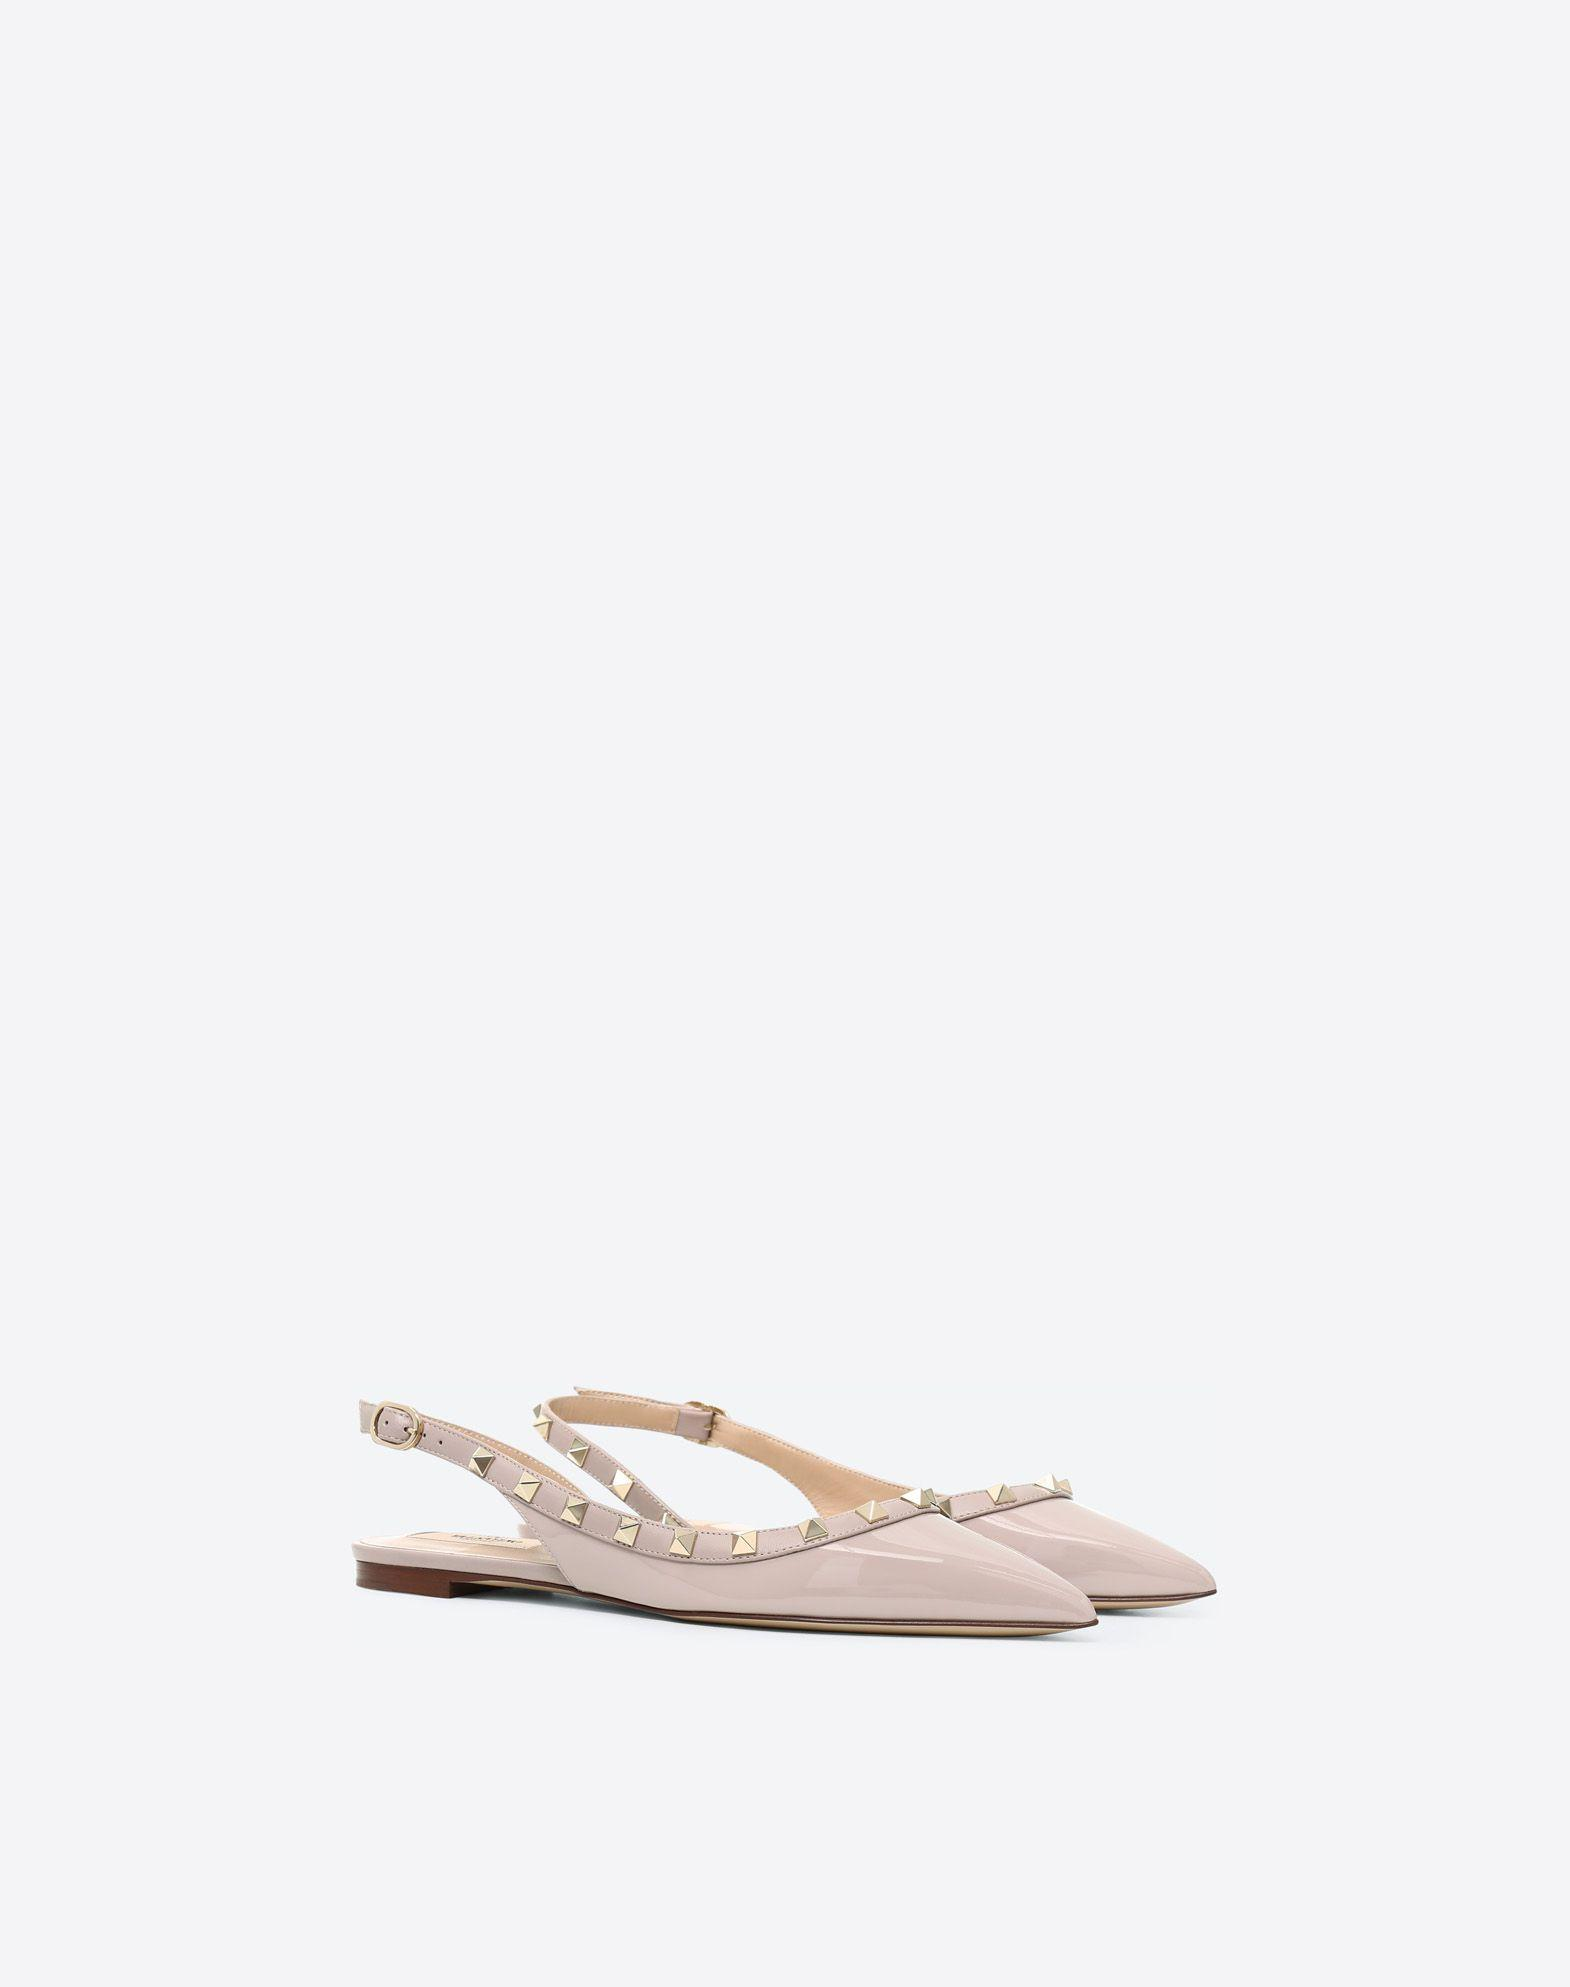 4a4d8f326e38 Valentino Rockstud Smooth Leather Slingback Ballerina Flats In Pink ...